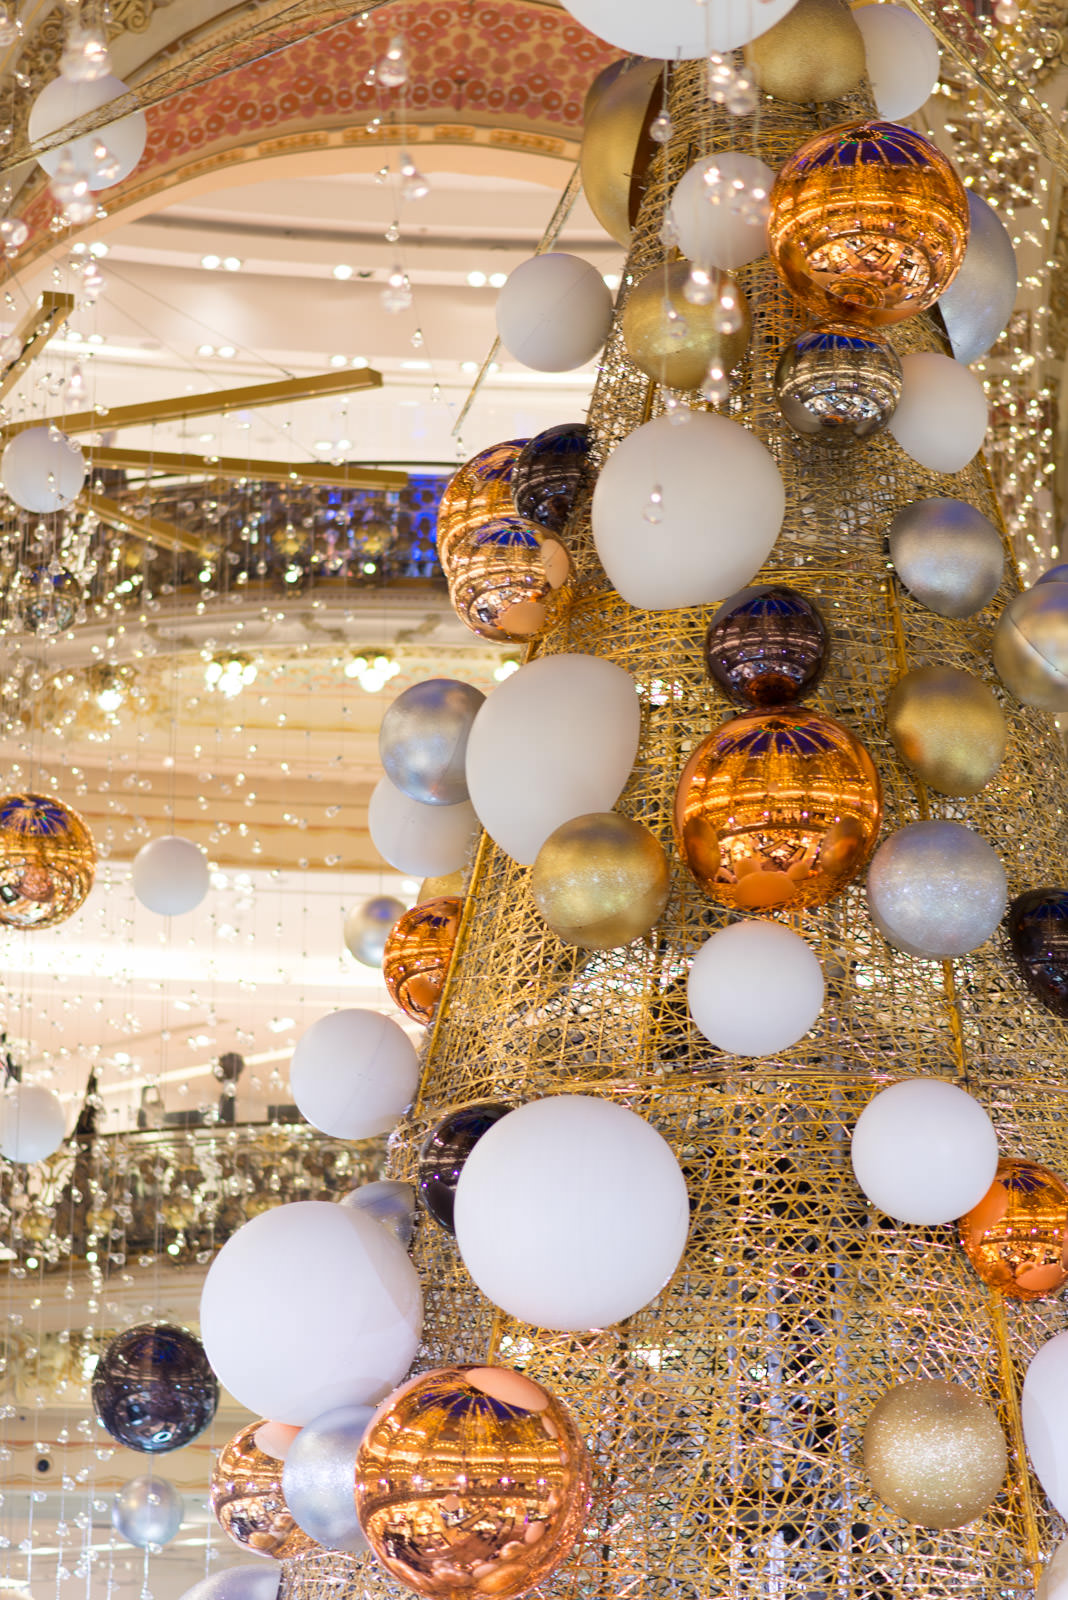 Blog-Mode-And-the-City-Lifestyke-Cinq-Petites-Choses-154-sapin-Noel-Galeries-Lafayette